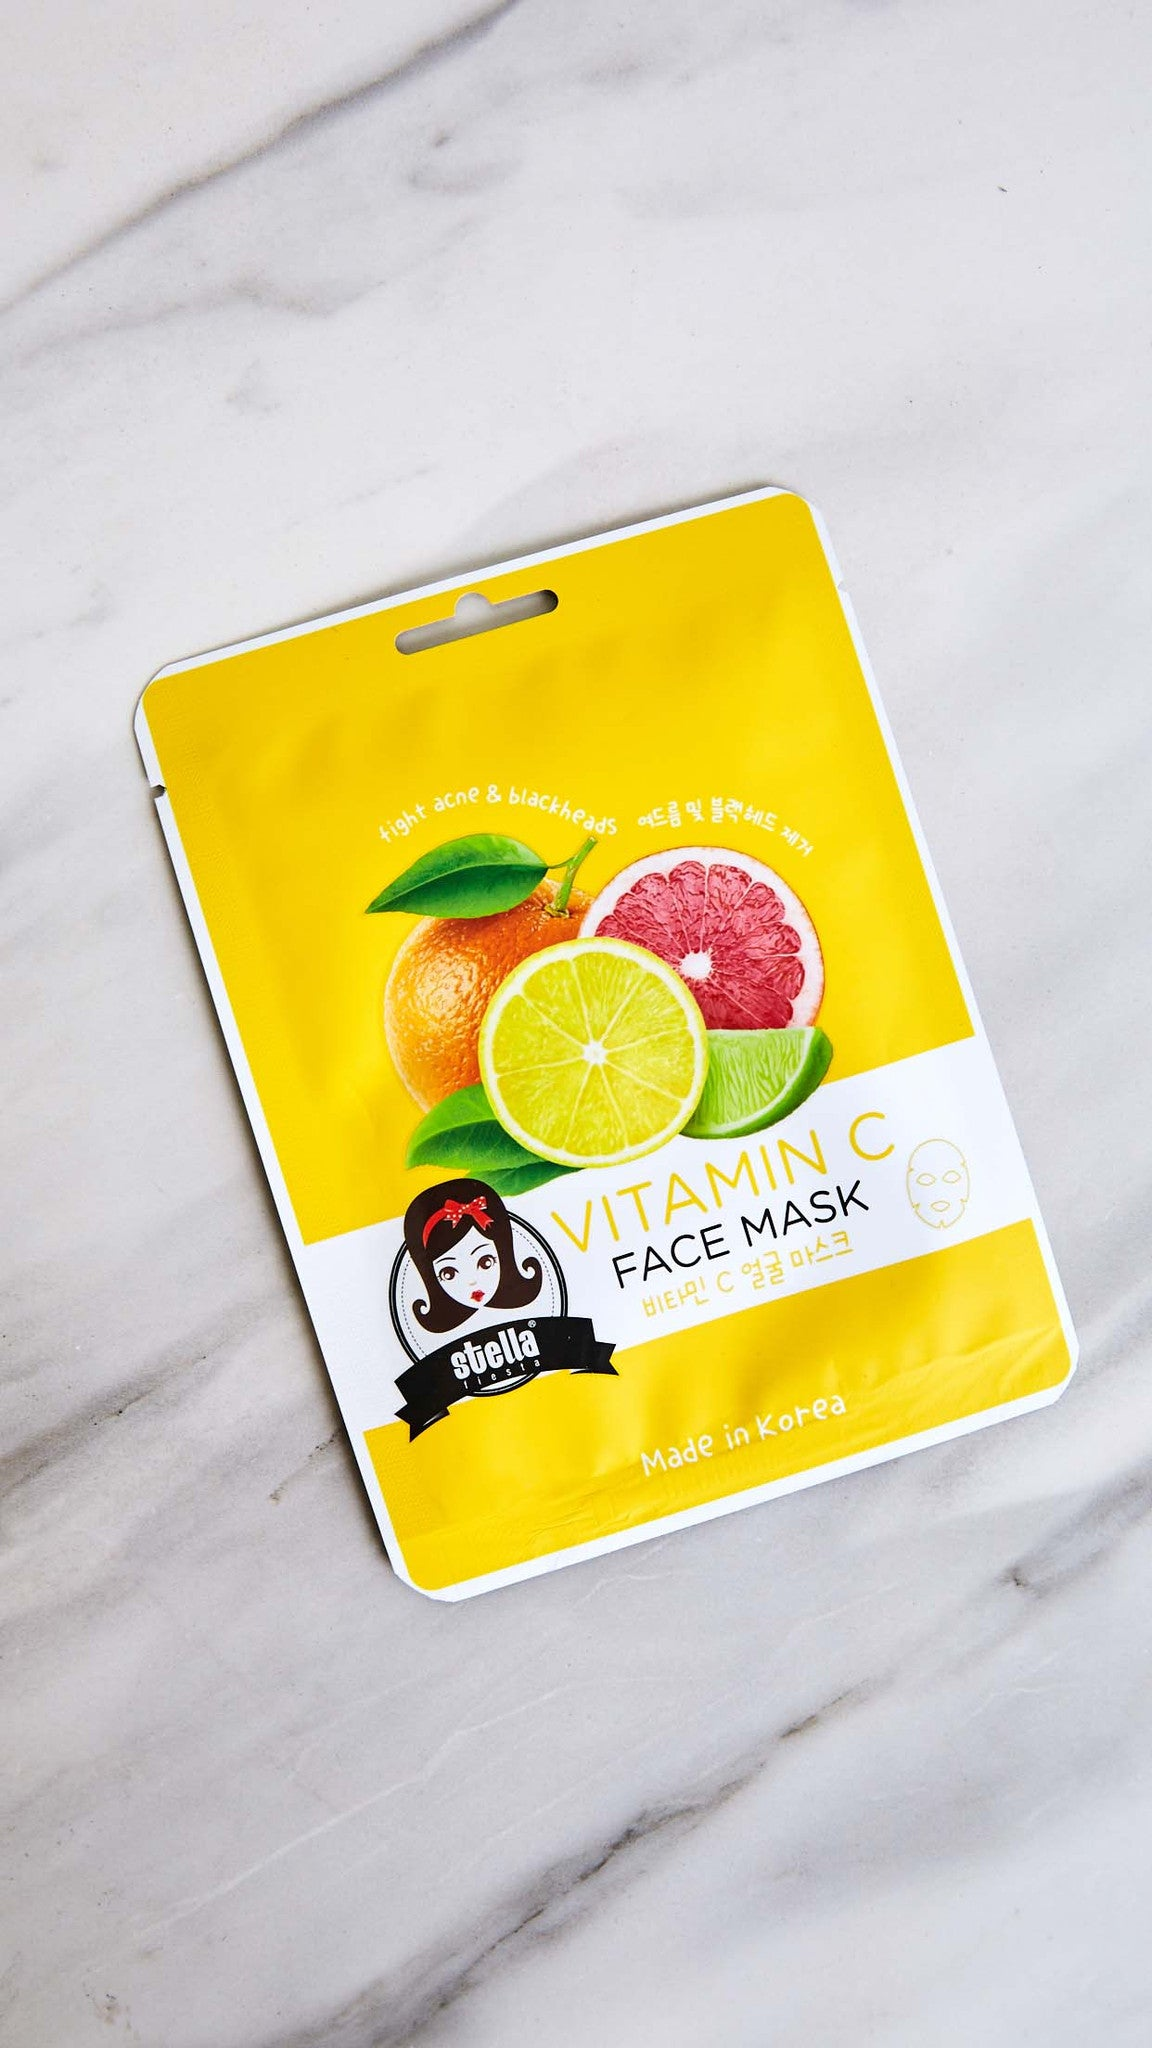 Vitamin C Fighting Acne and Blackheads Face Mask